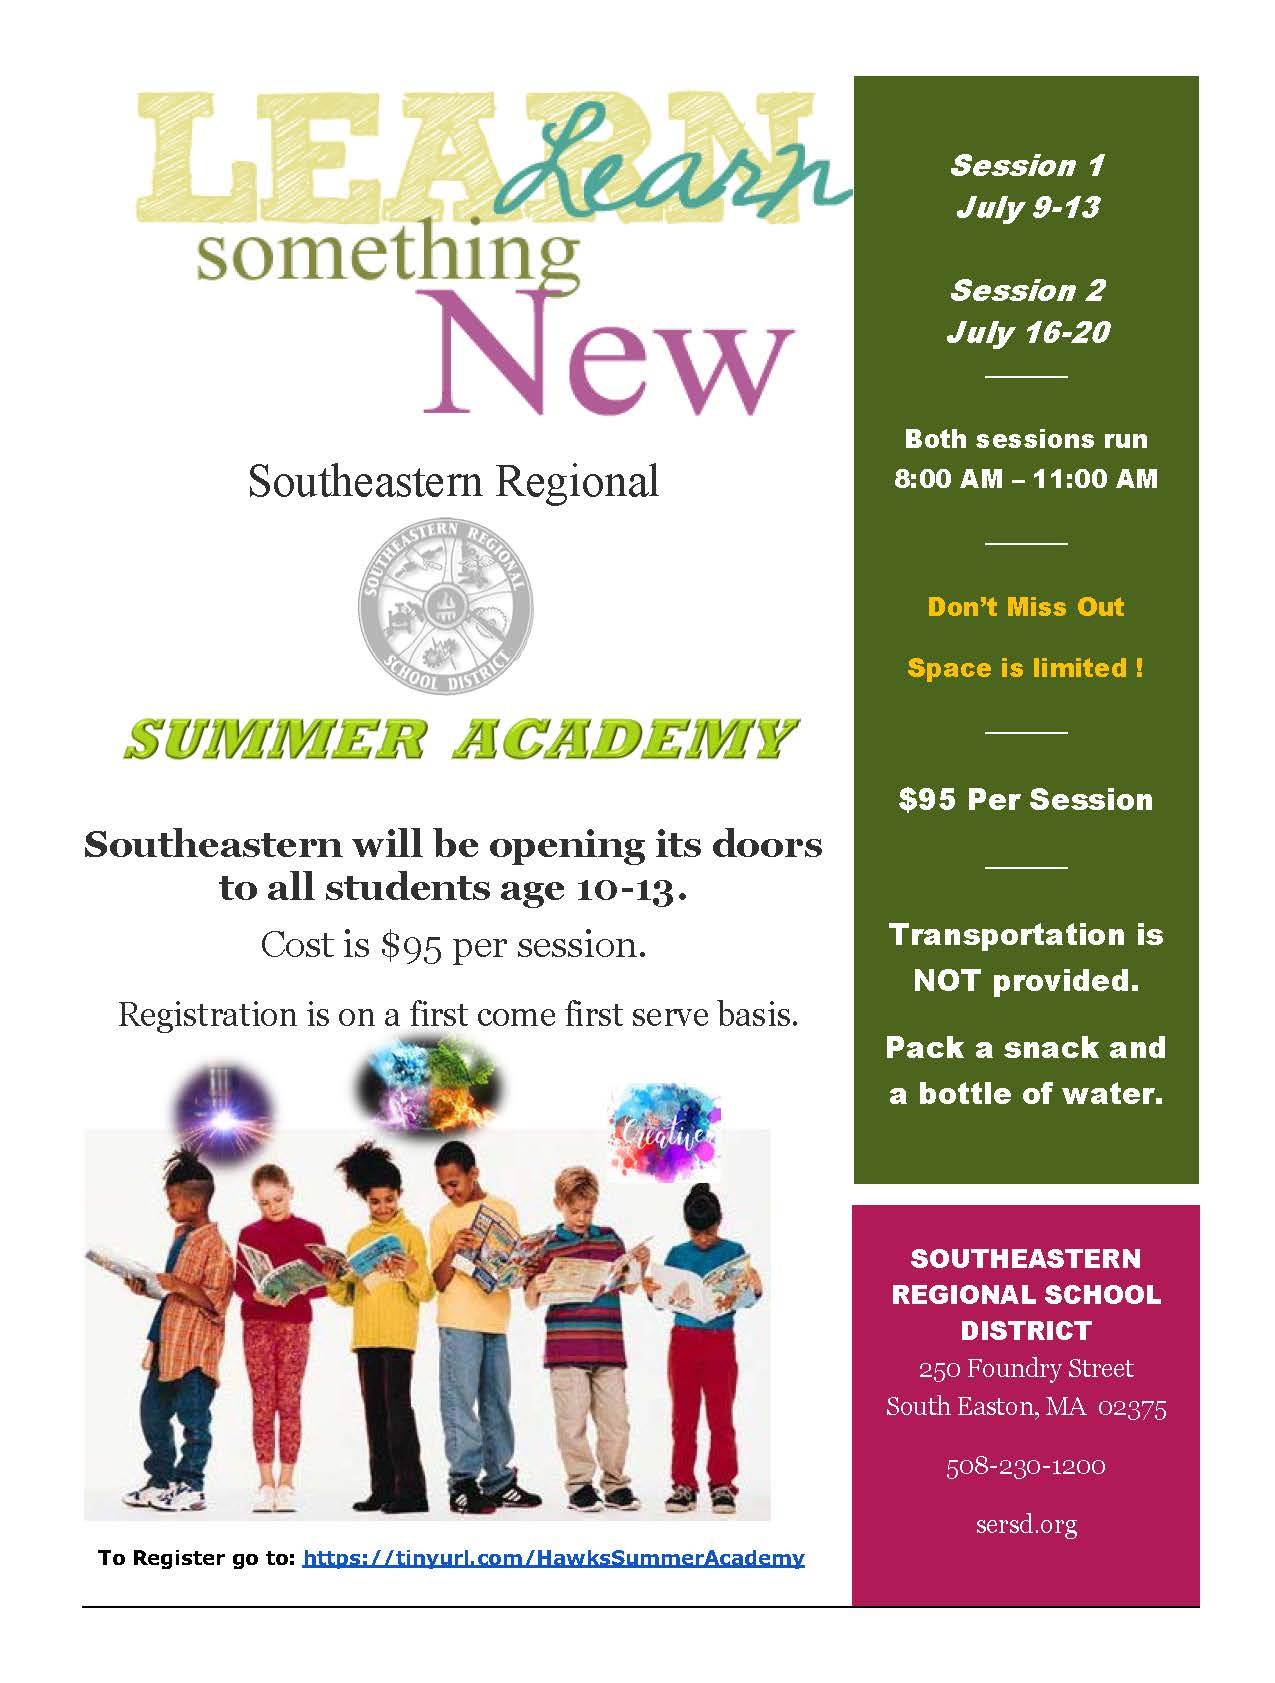 Southeastern Regional Vocational Technical High School to Host Summer Academy